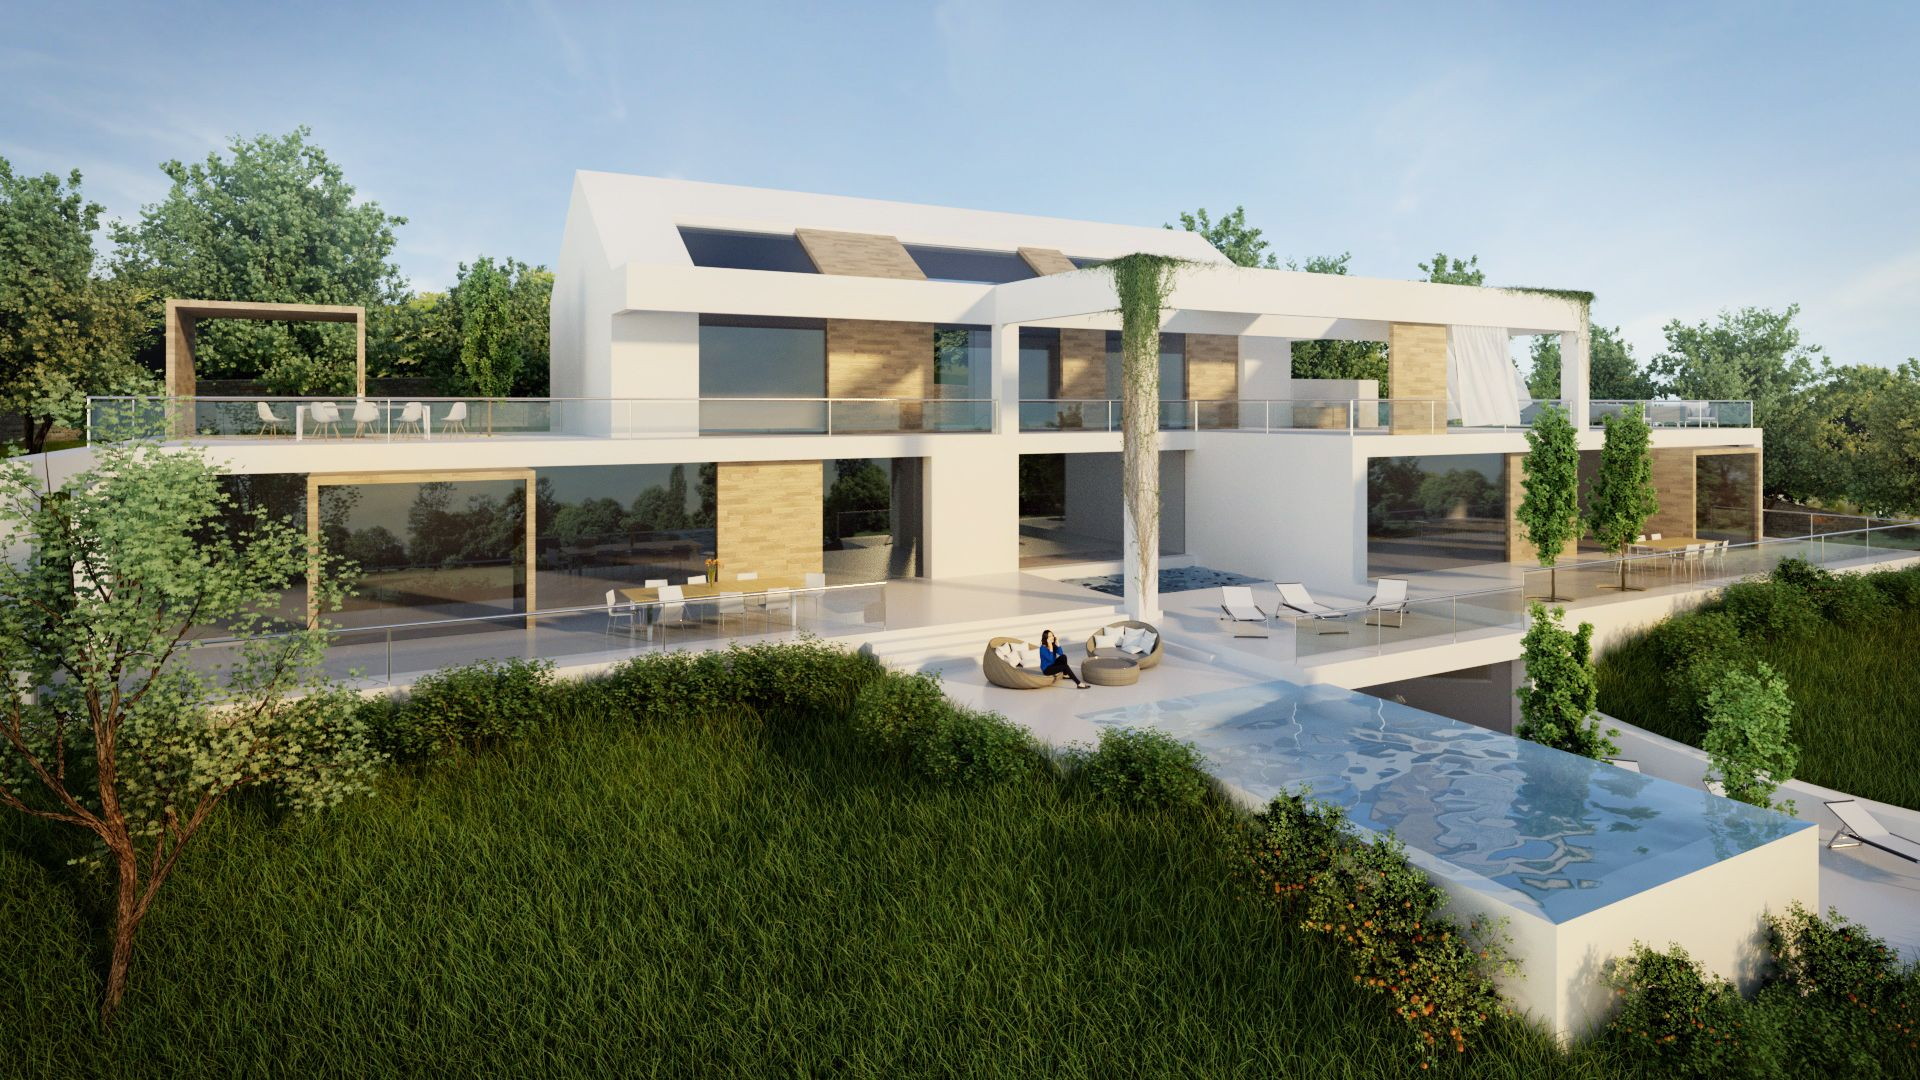 Explore Modern House Design, Modern Houses And More!